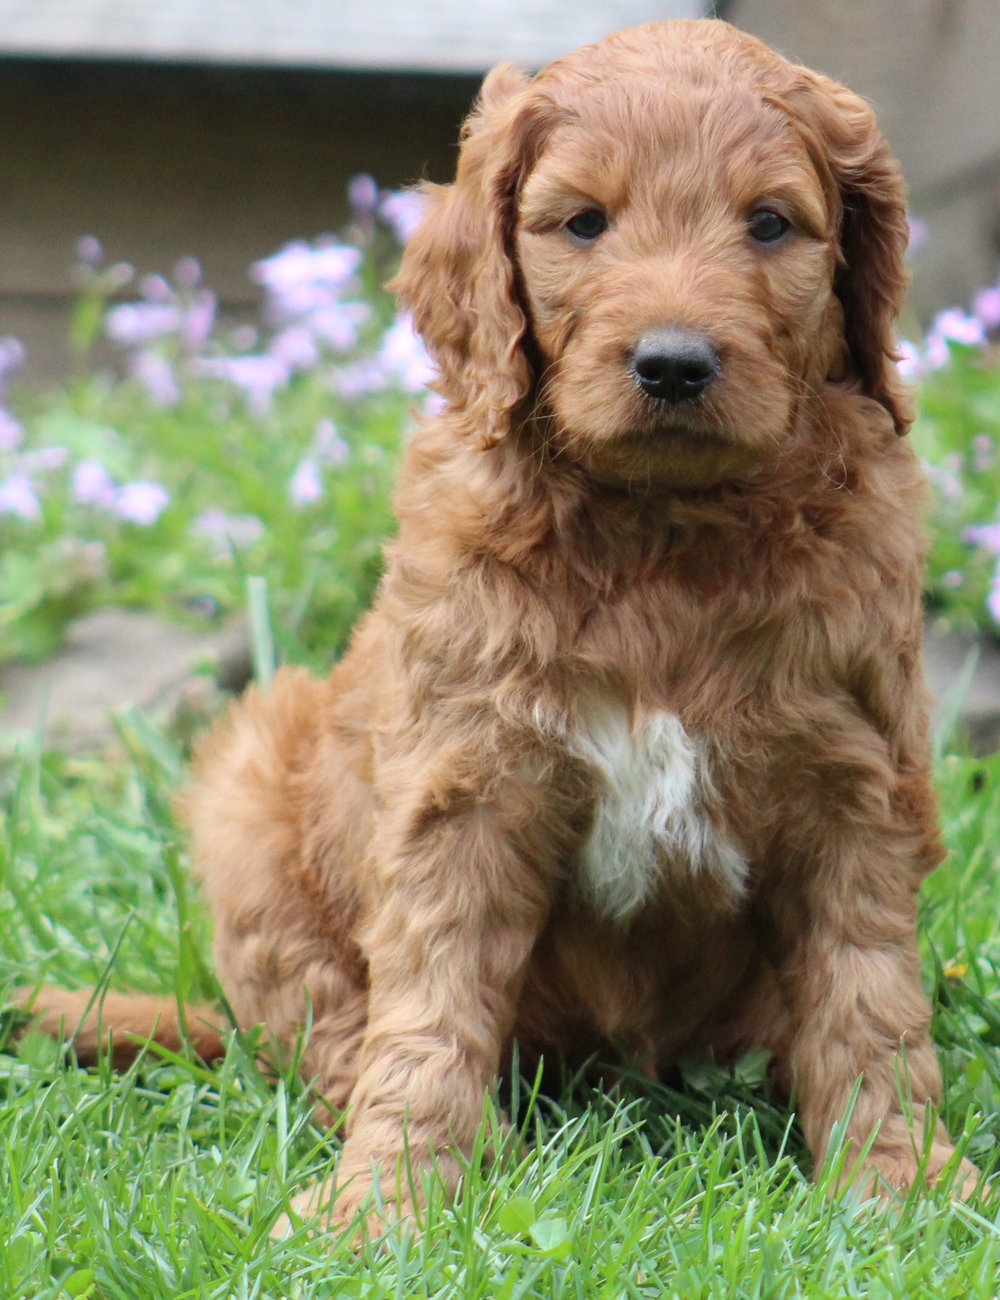 f1-Goldendoodle-Puppy